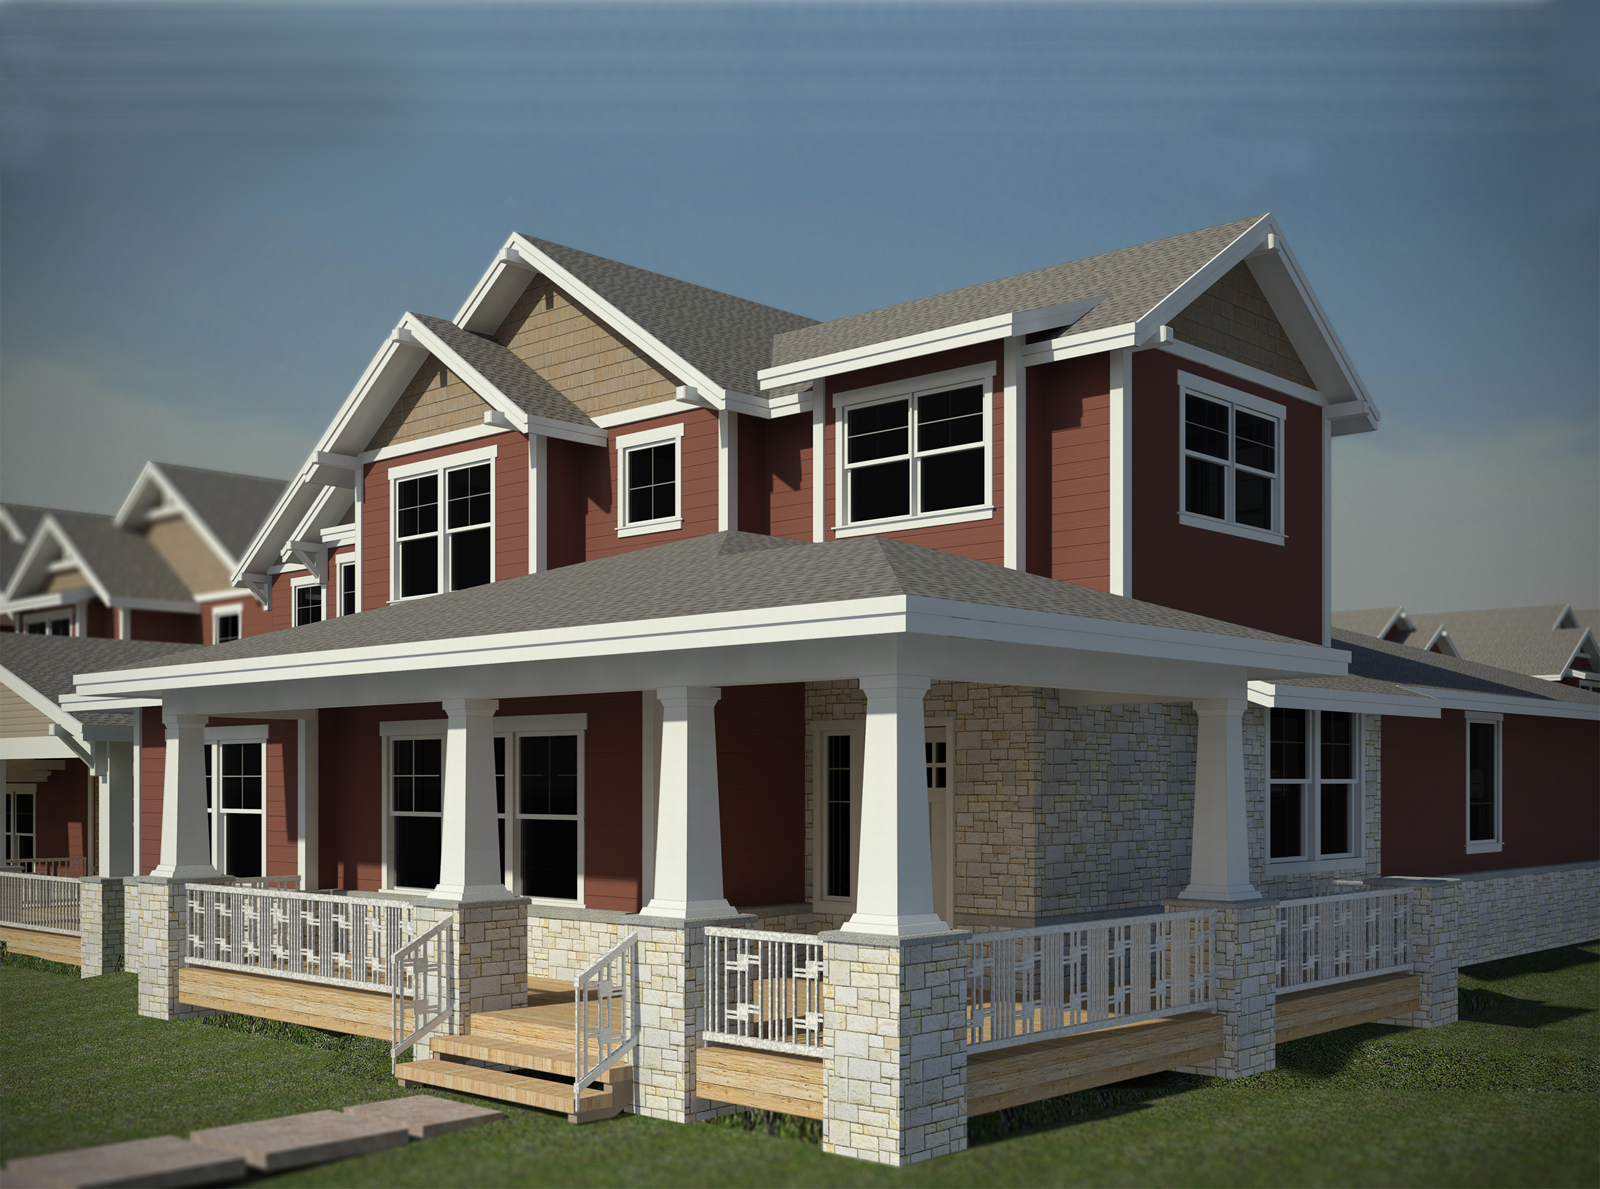 Townhome conceptual architecture from the front porch view